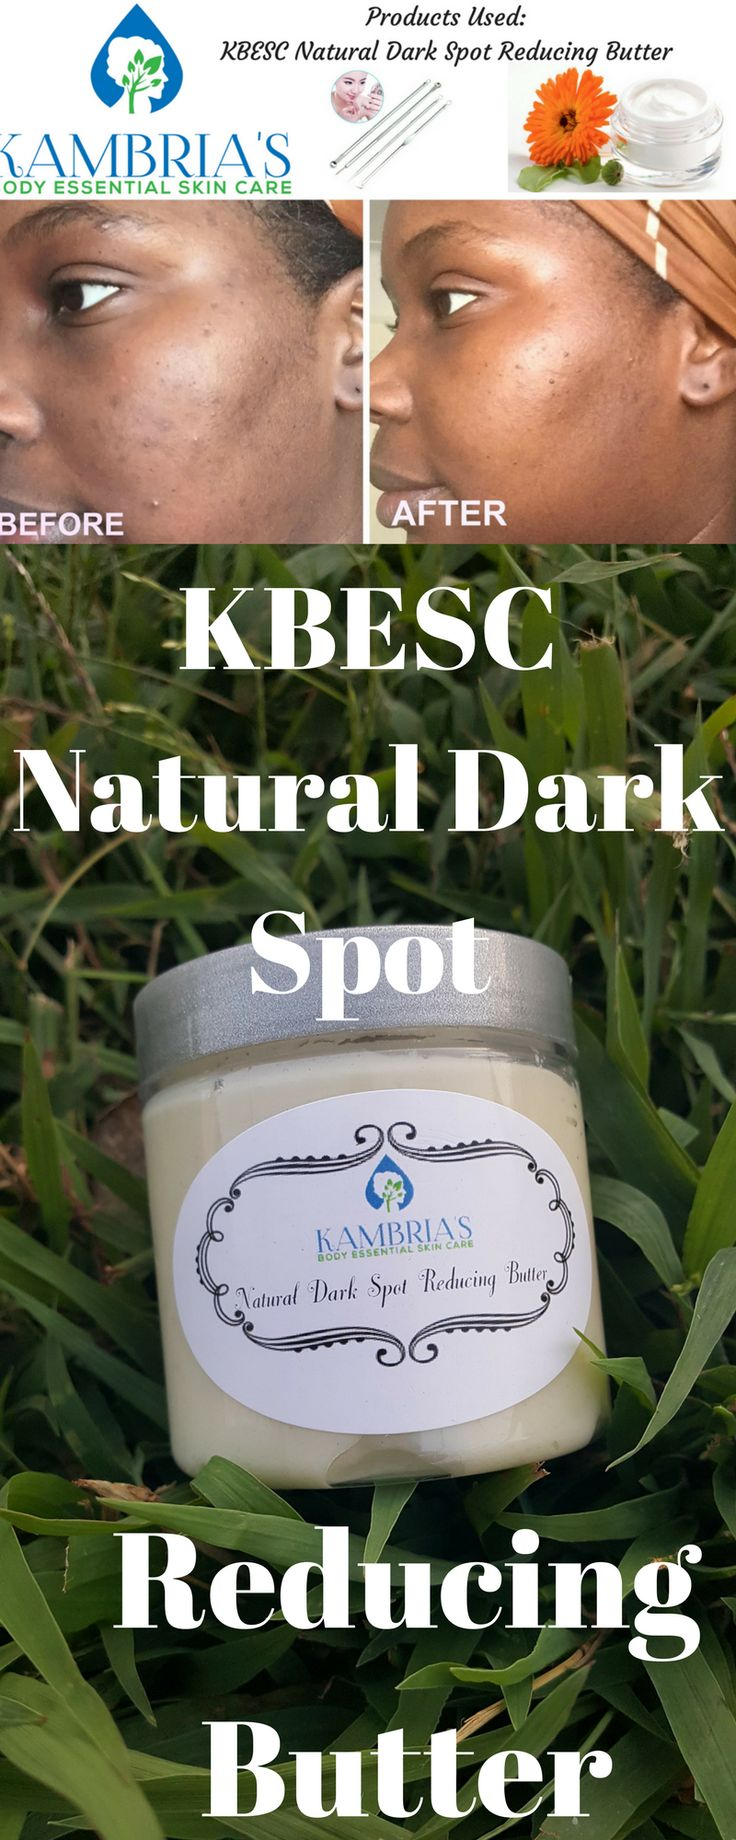 Do you have a scar that has left an ugly dark spot on your skin? Pimples leaving their signature dark marks on your face? Need to even out your skin tone? KBESC Natural Dark Spot Remover Cream will drastically reduce the appearance of any blemish or dark spot and all desired areas. Made by hand with 100% organic butters and essential oils, this dark spot remover cream is sure to leave your skin feeling silky smooth and as clear as your heart desires.